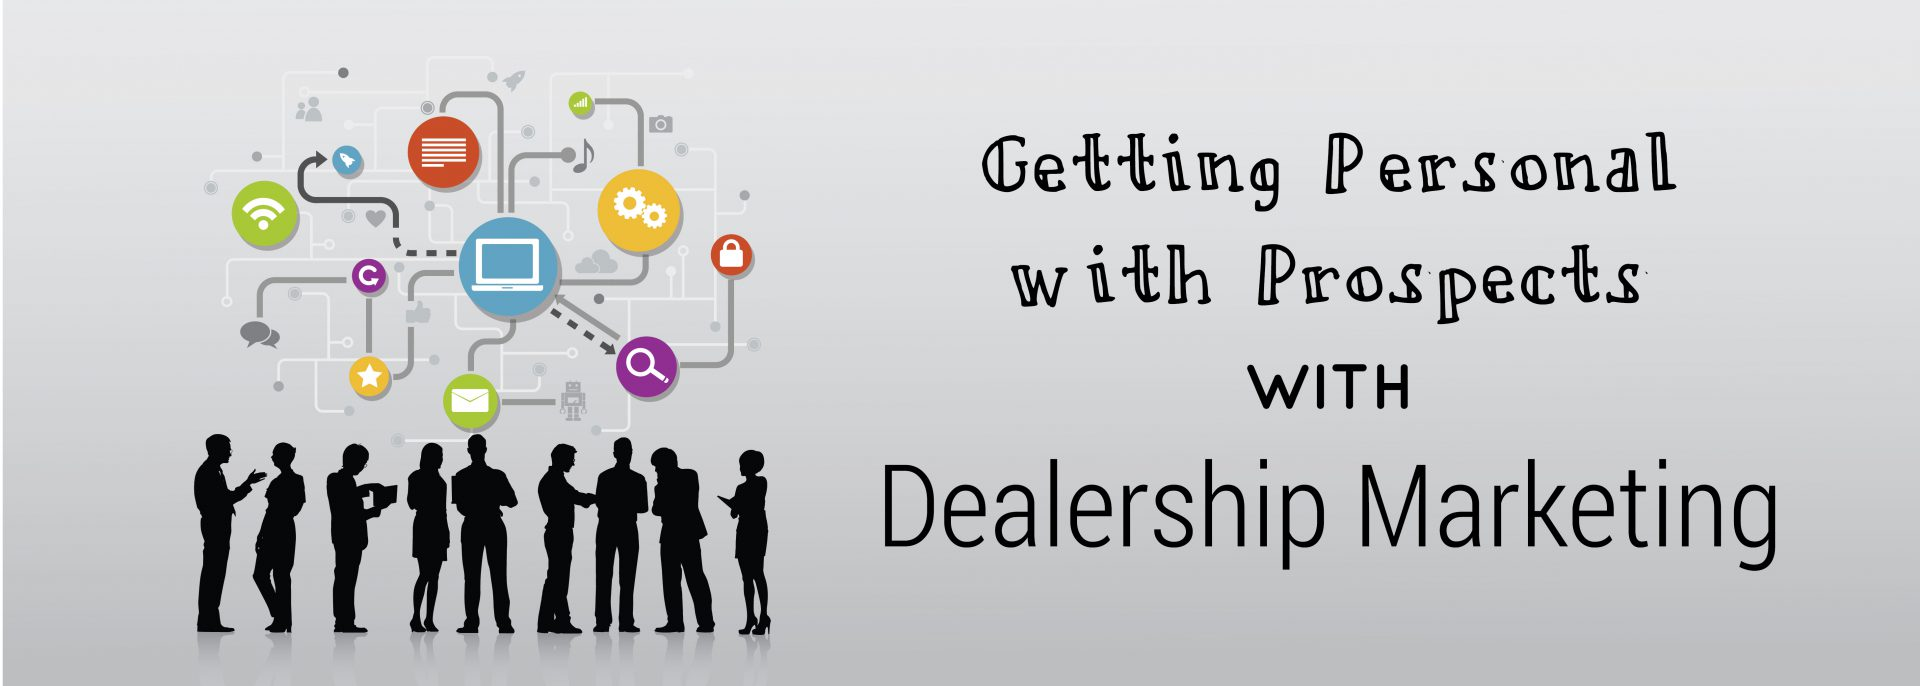 Getting Personal with Prospects With Dealership Marketing | ADI Agency